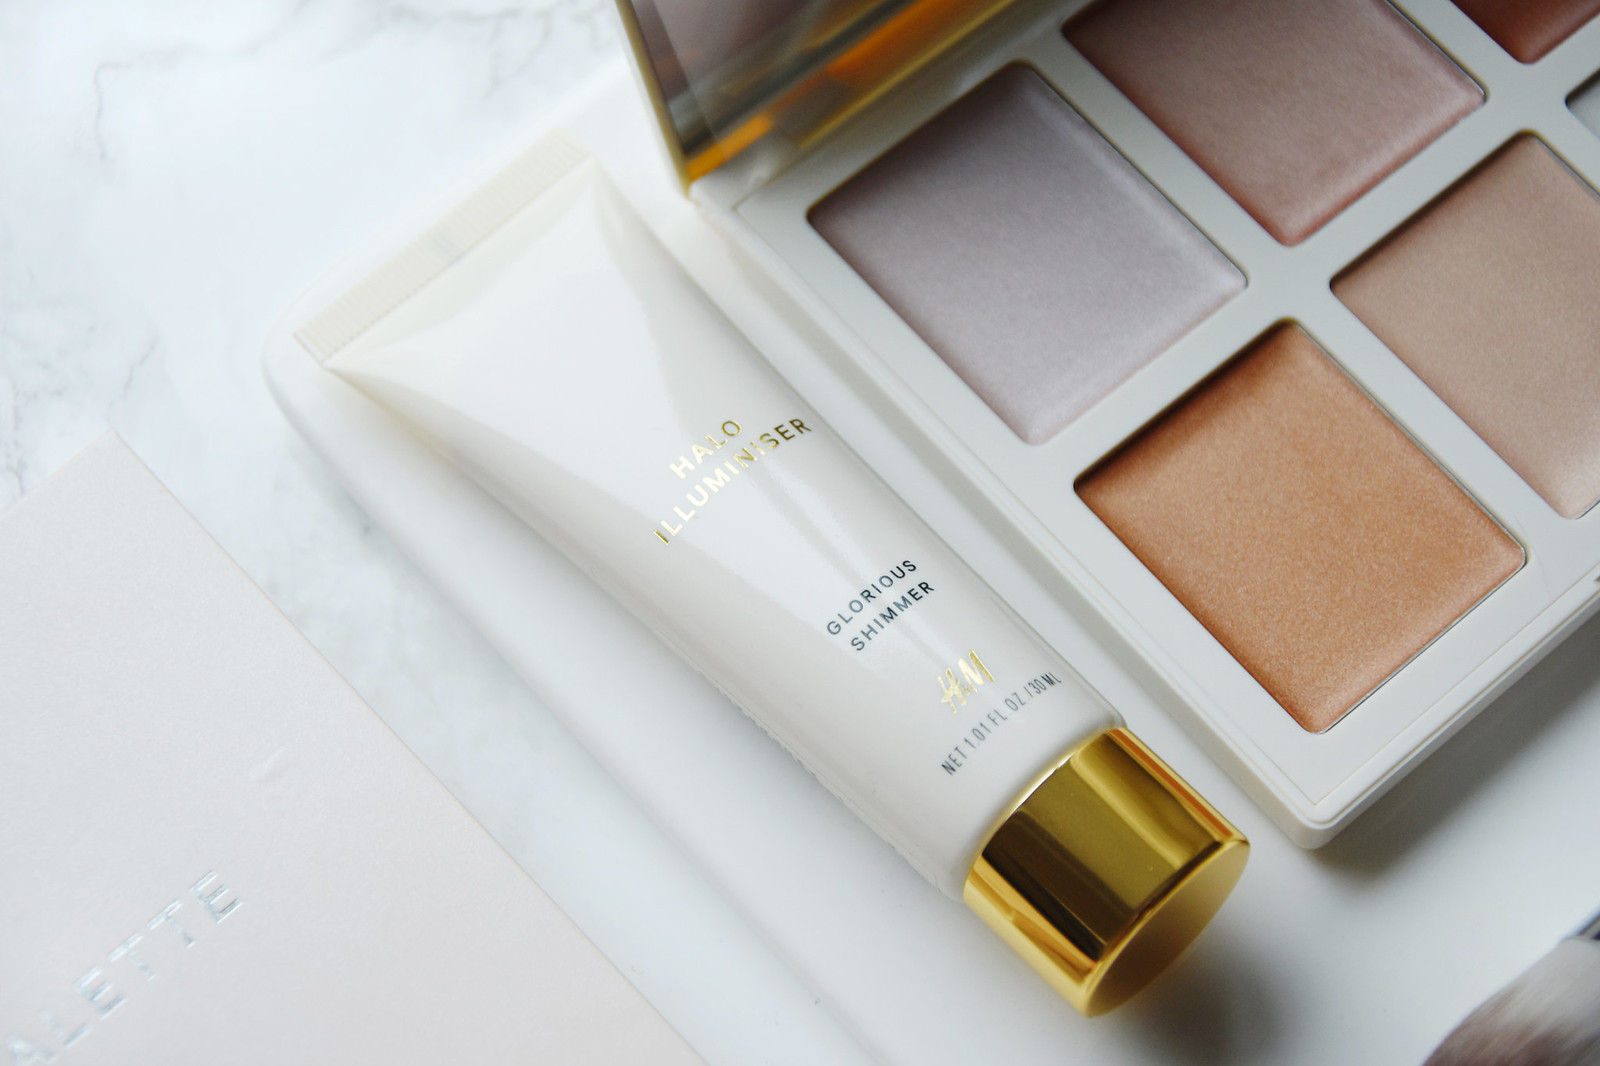 H&M Halo Illuminiser review